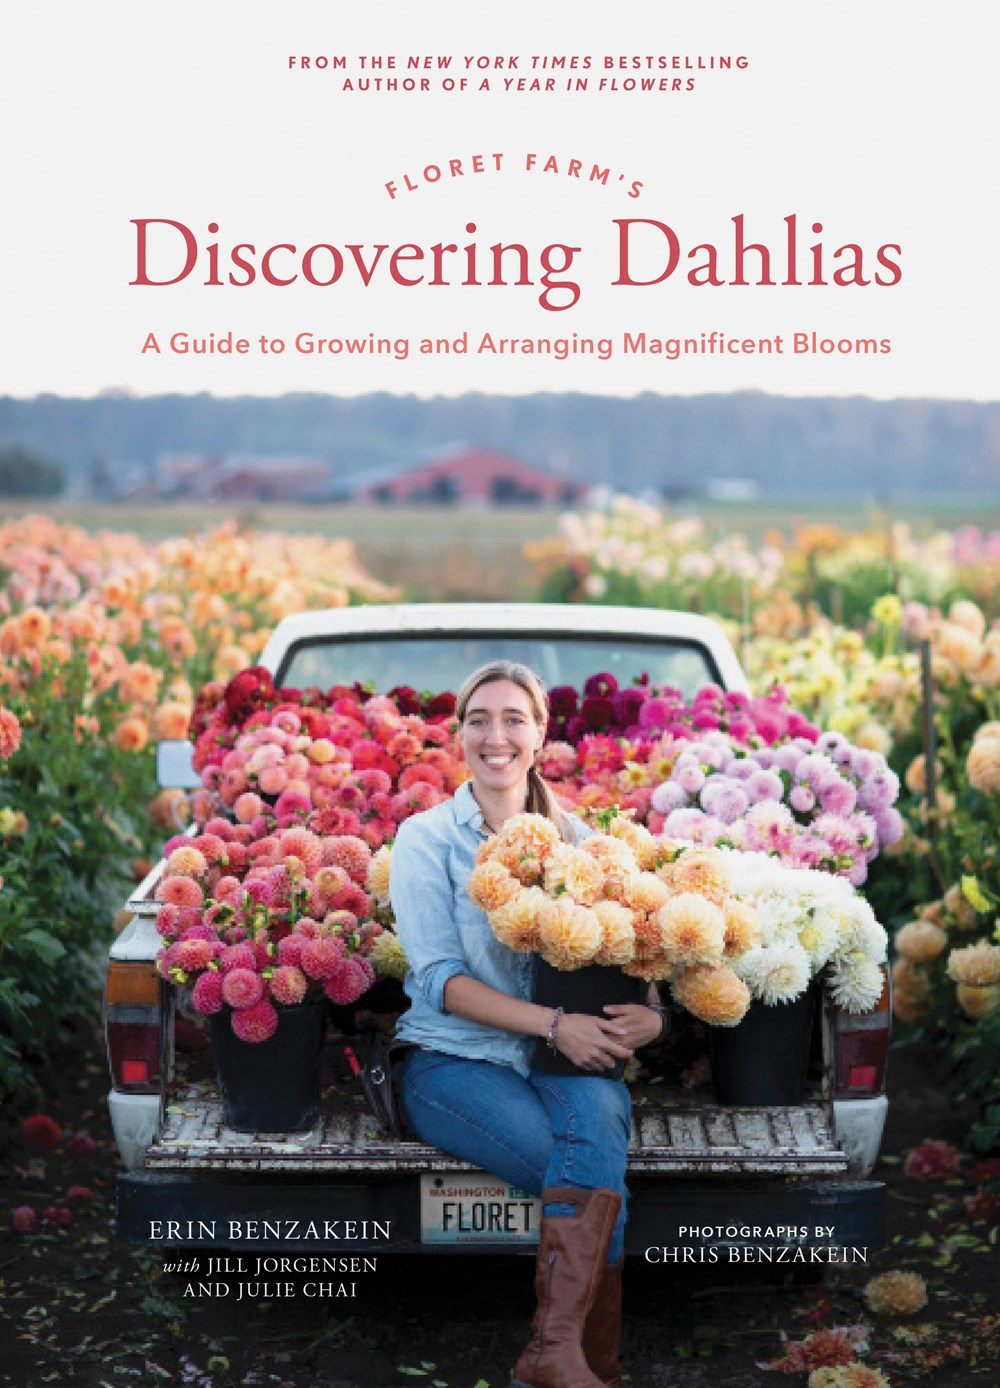 A Conversation with Erin Benzakein, author of 'Floret Farm's Discovering Dahlias'